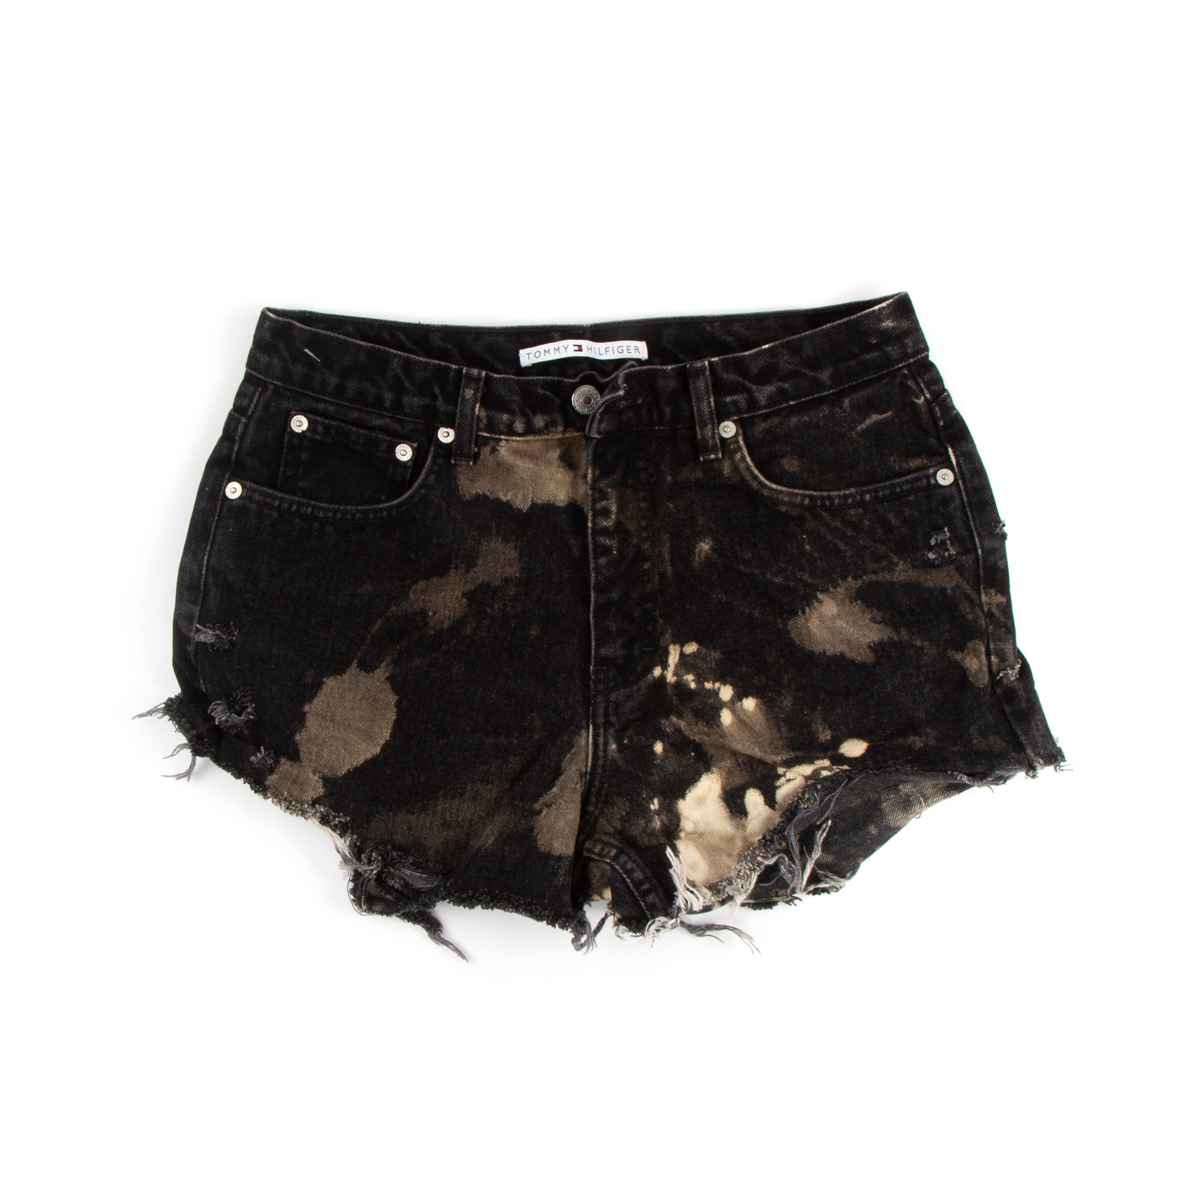 Black Bleached Cut Off Shorts (Size 10)